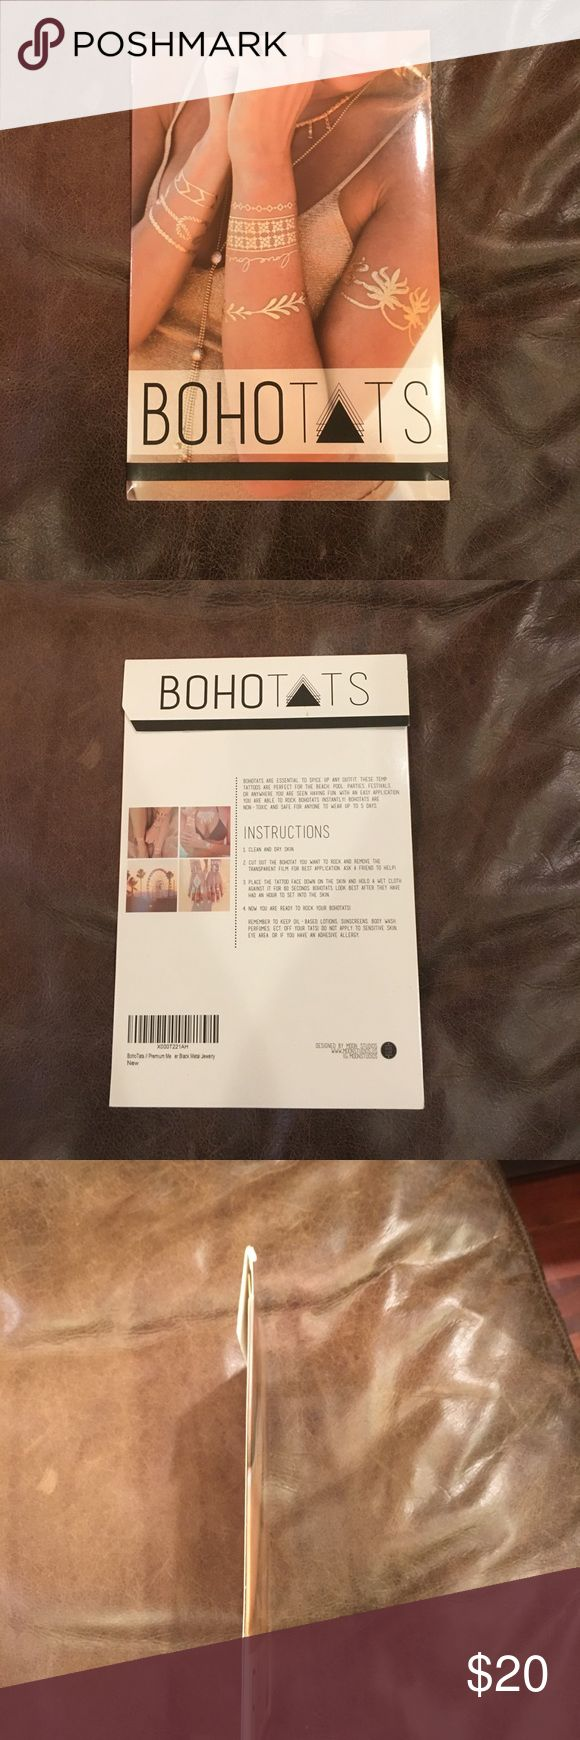 Brand new Boho Tats flash gold and silver tattoos Brand new! Other